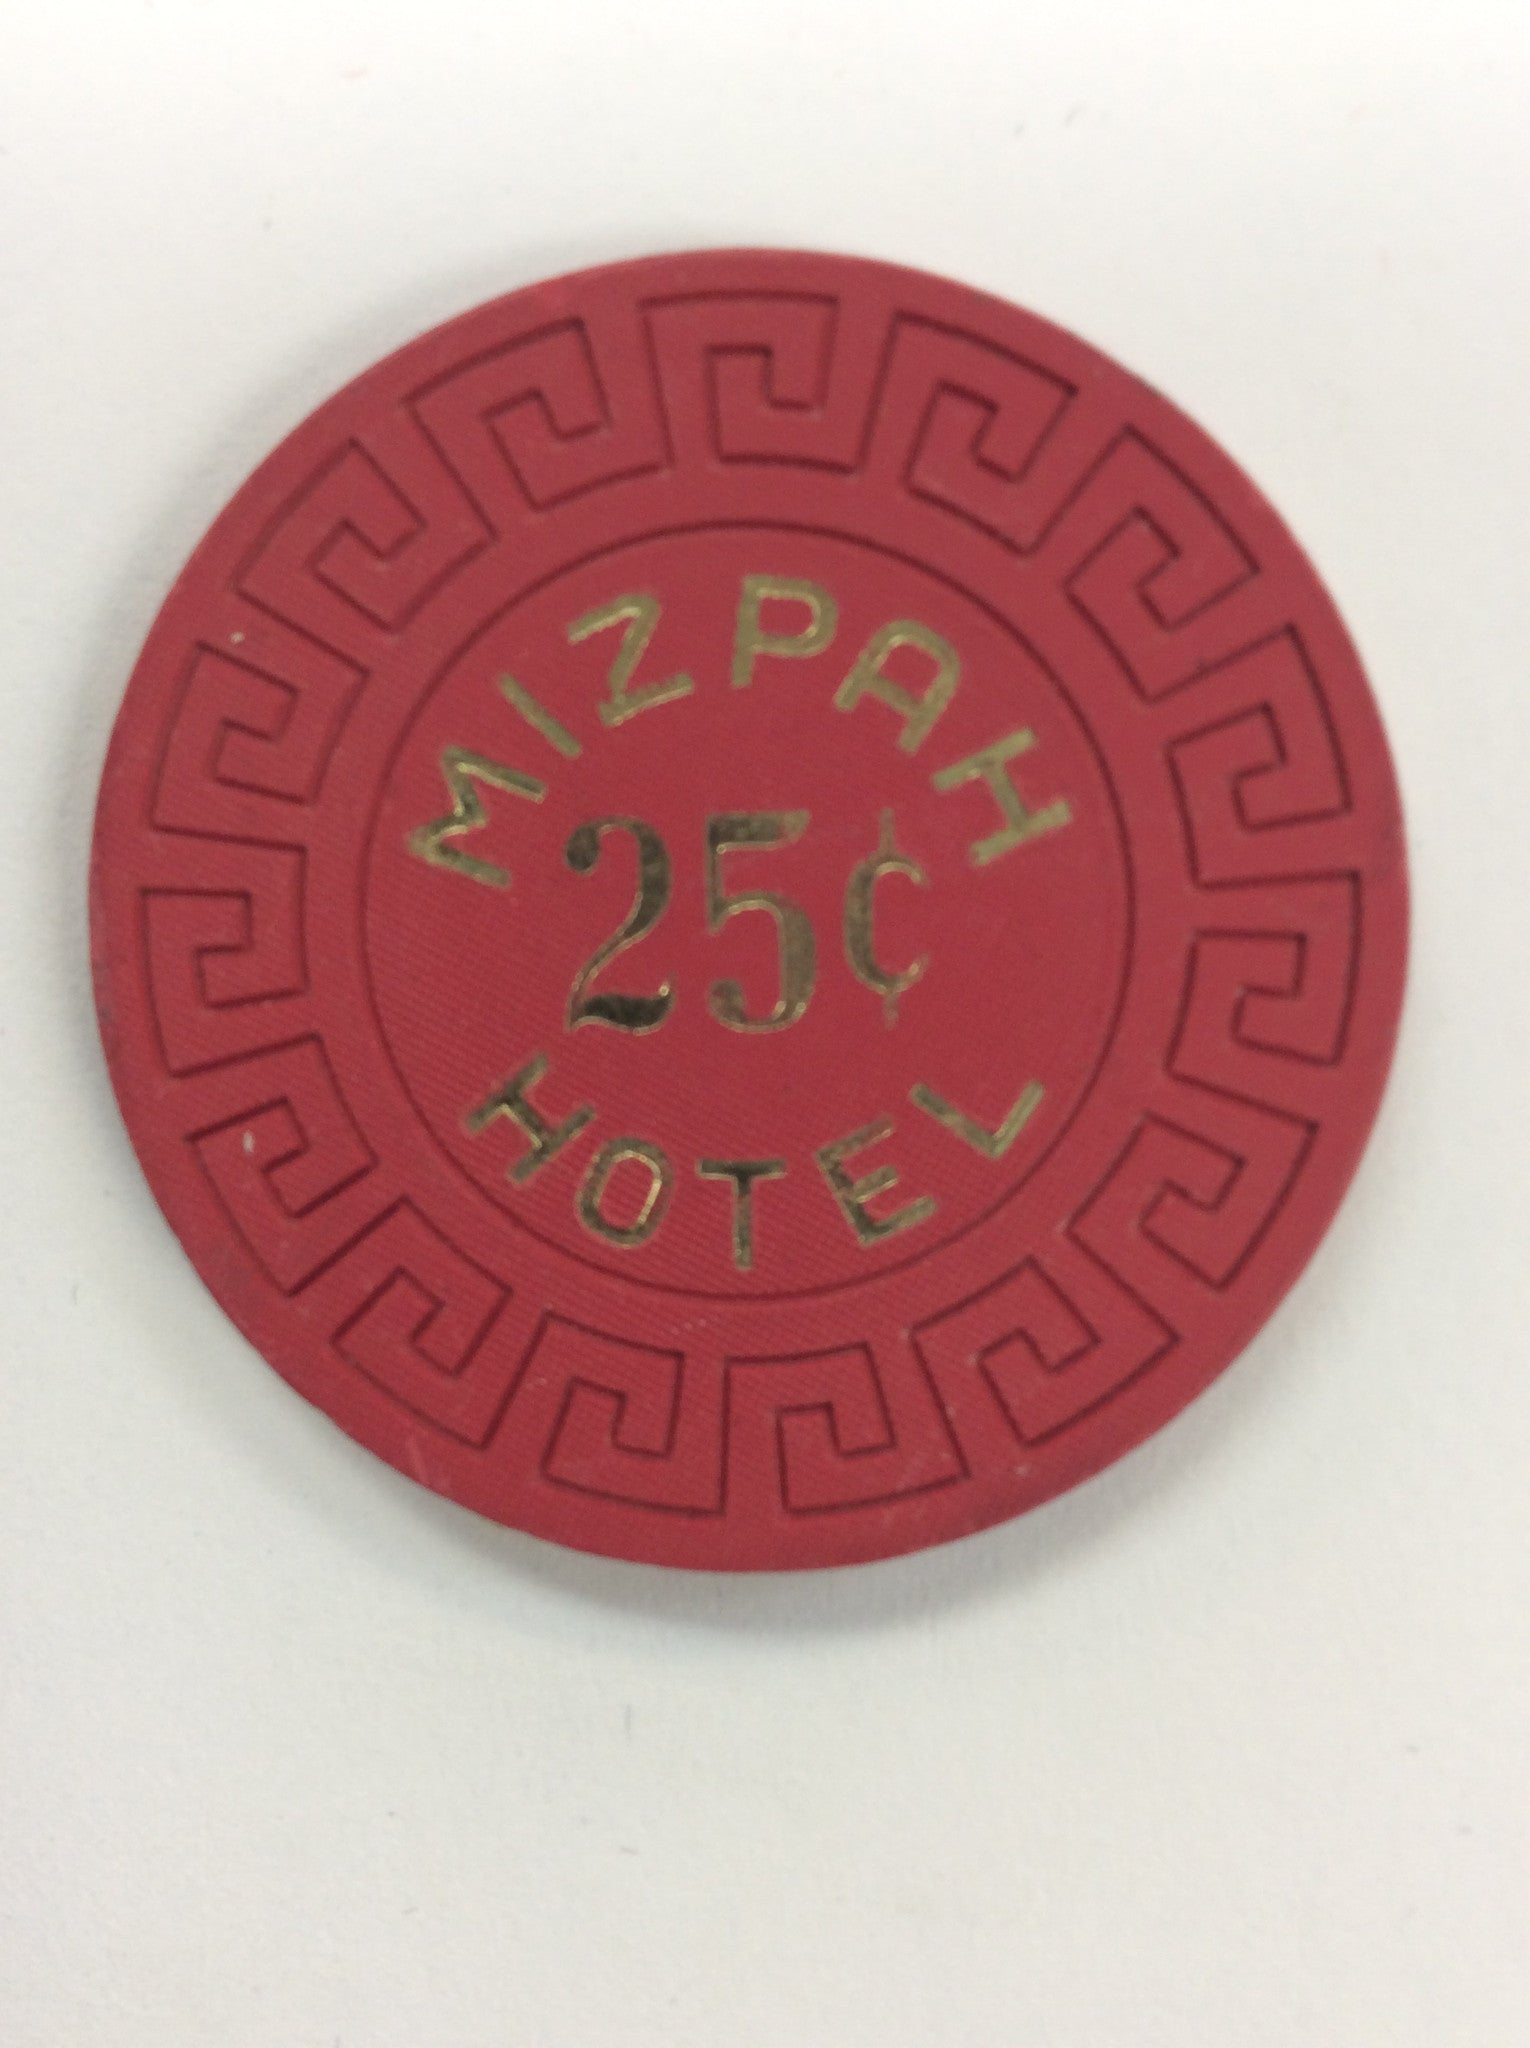 Mizpah Hotel 25cent (red) chip - Spinettis Gaming